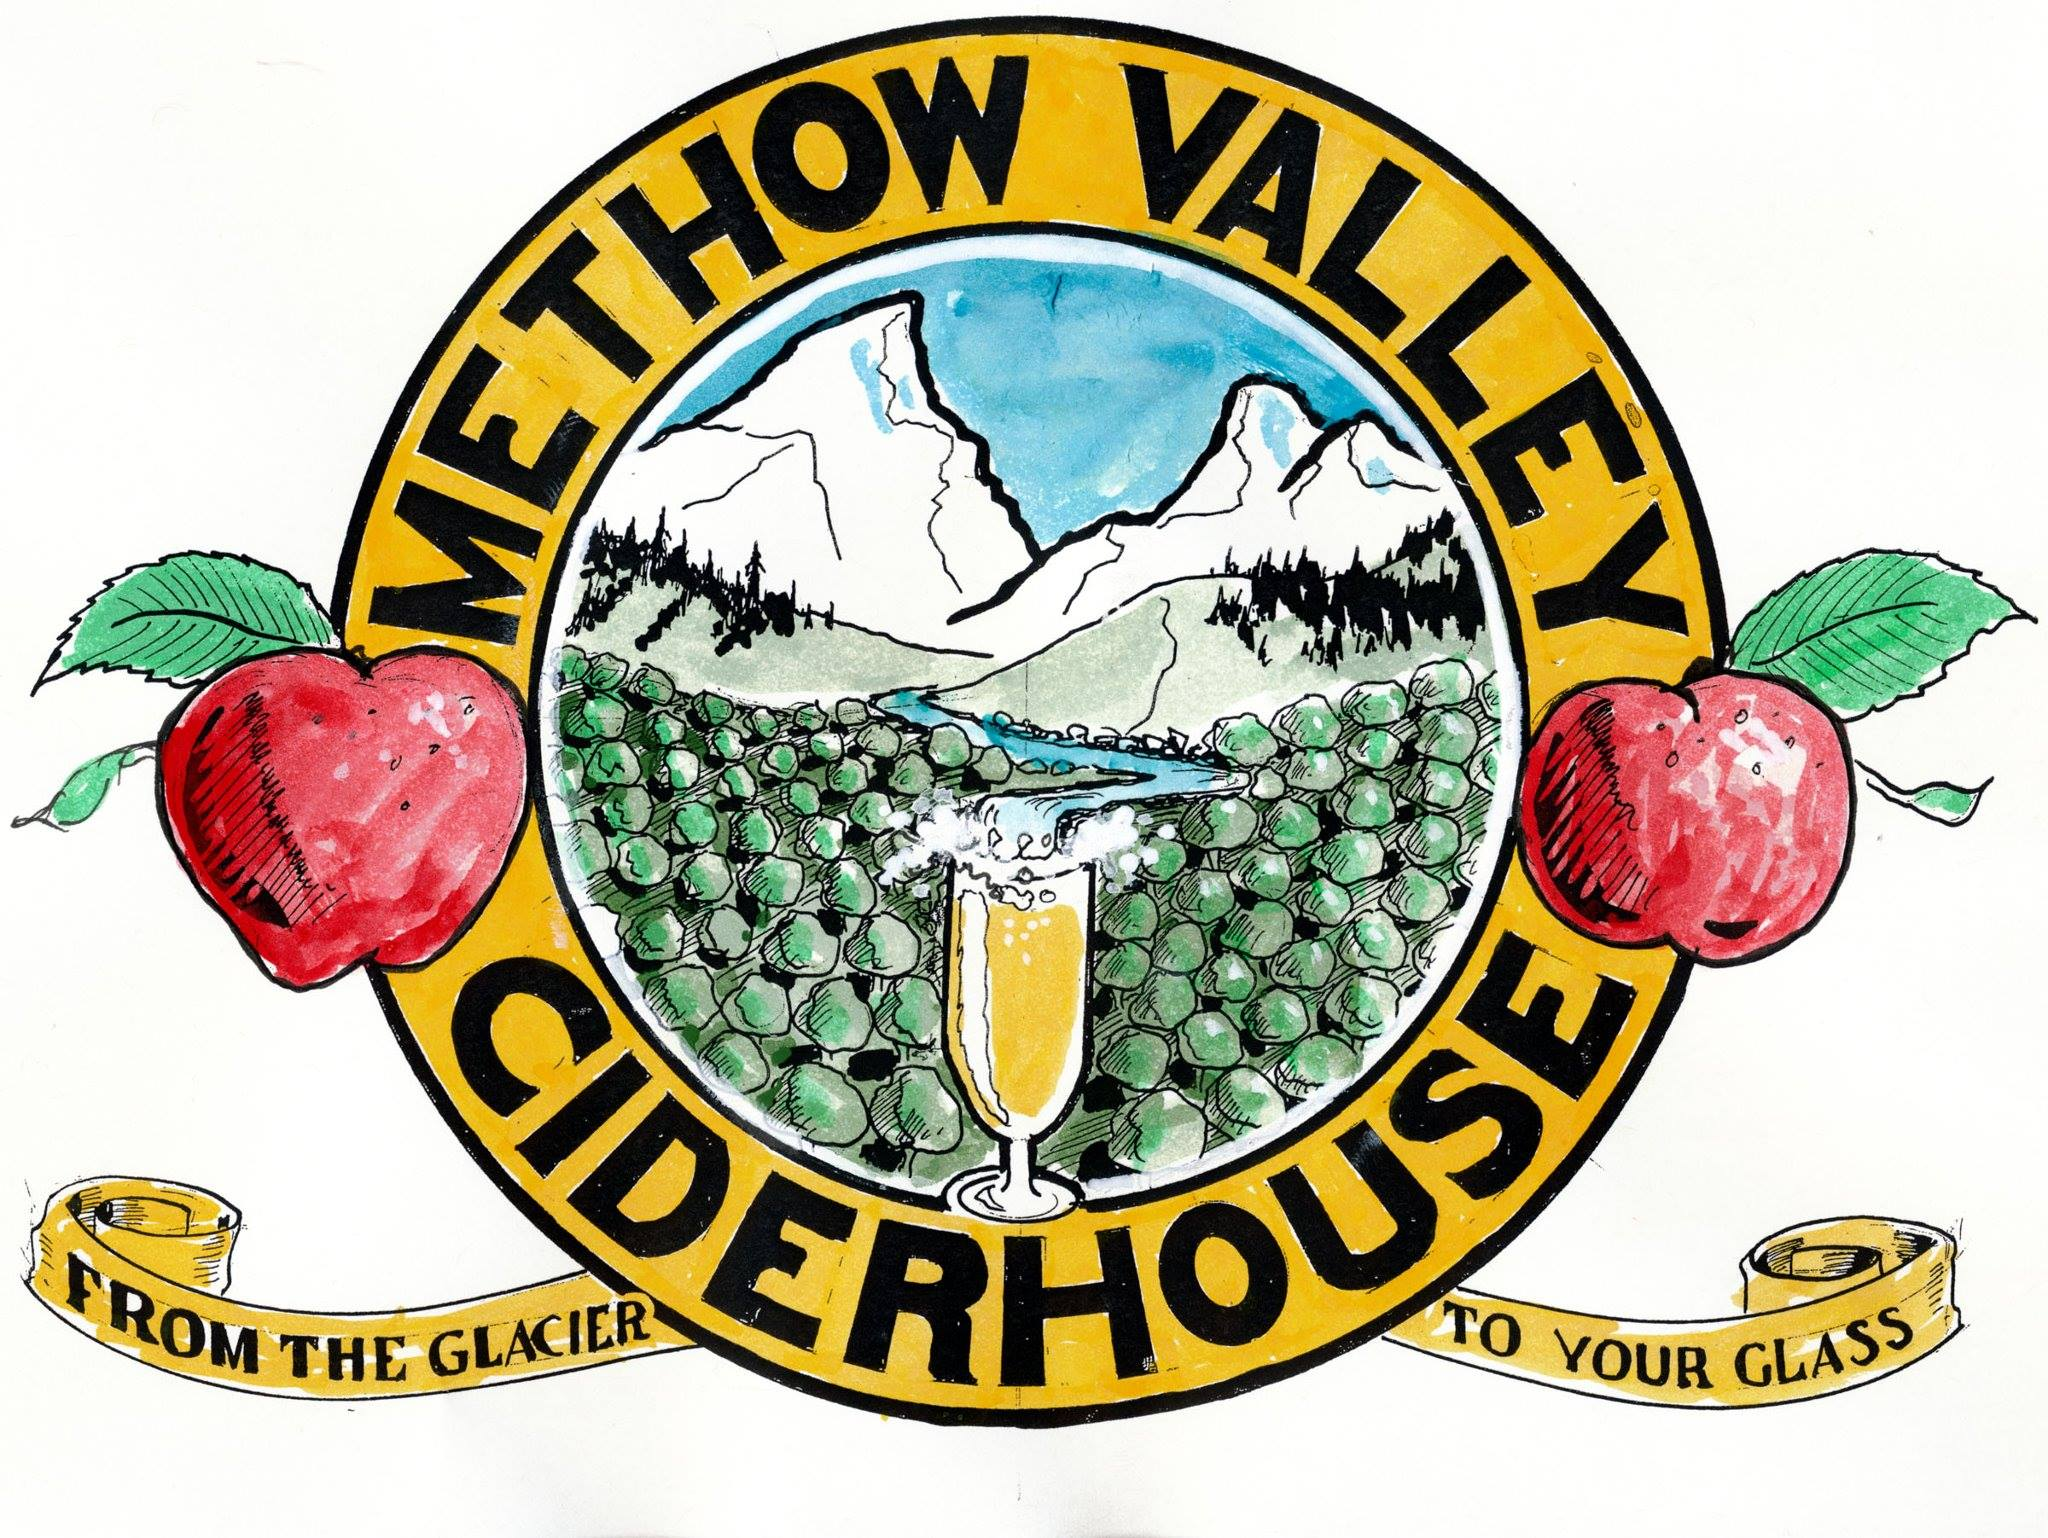 Methow Valley Ciderhouse Logo